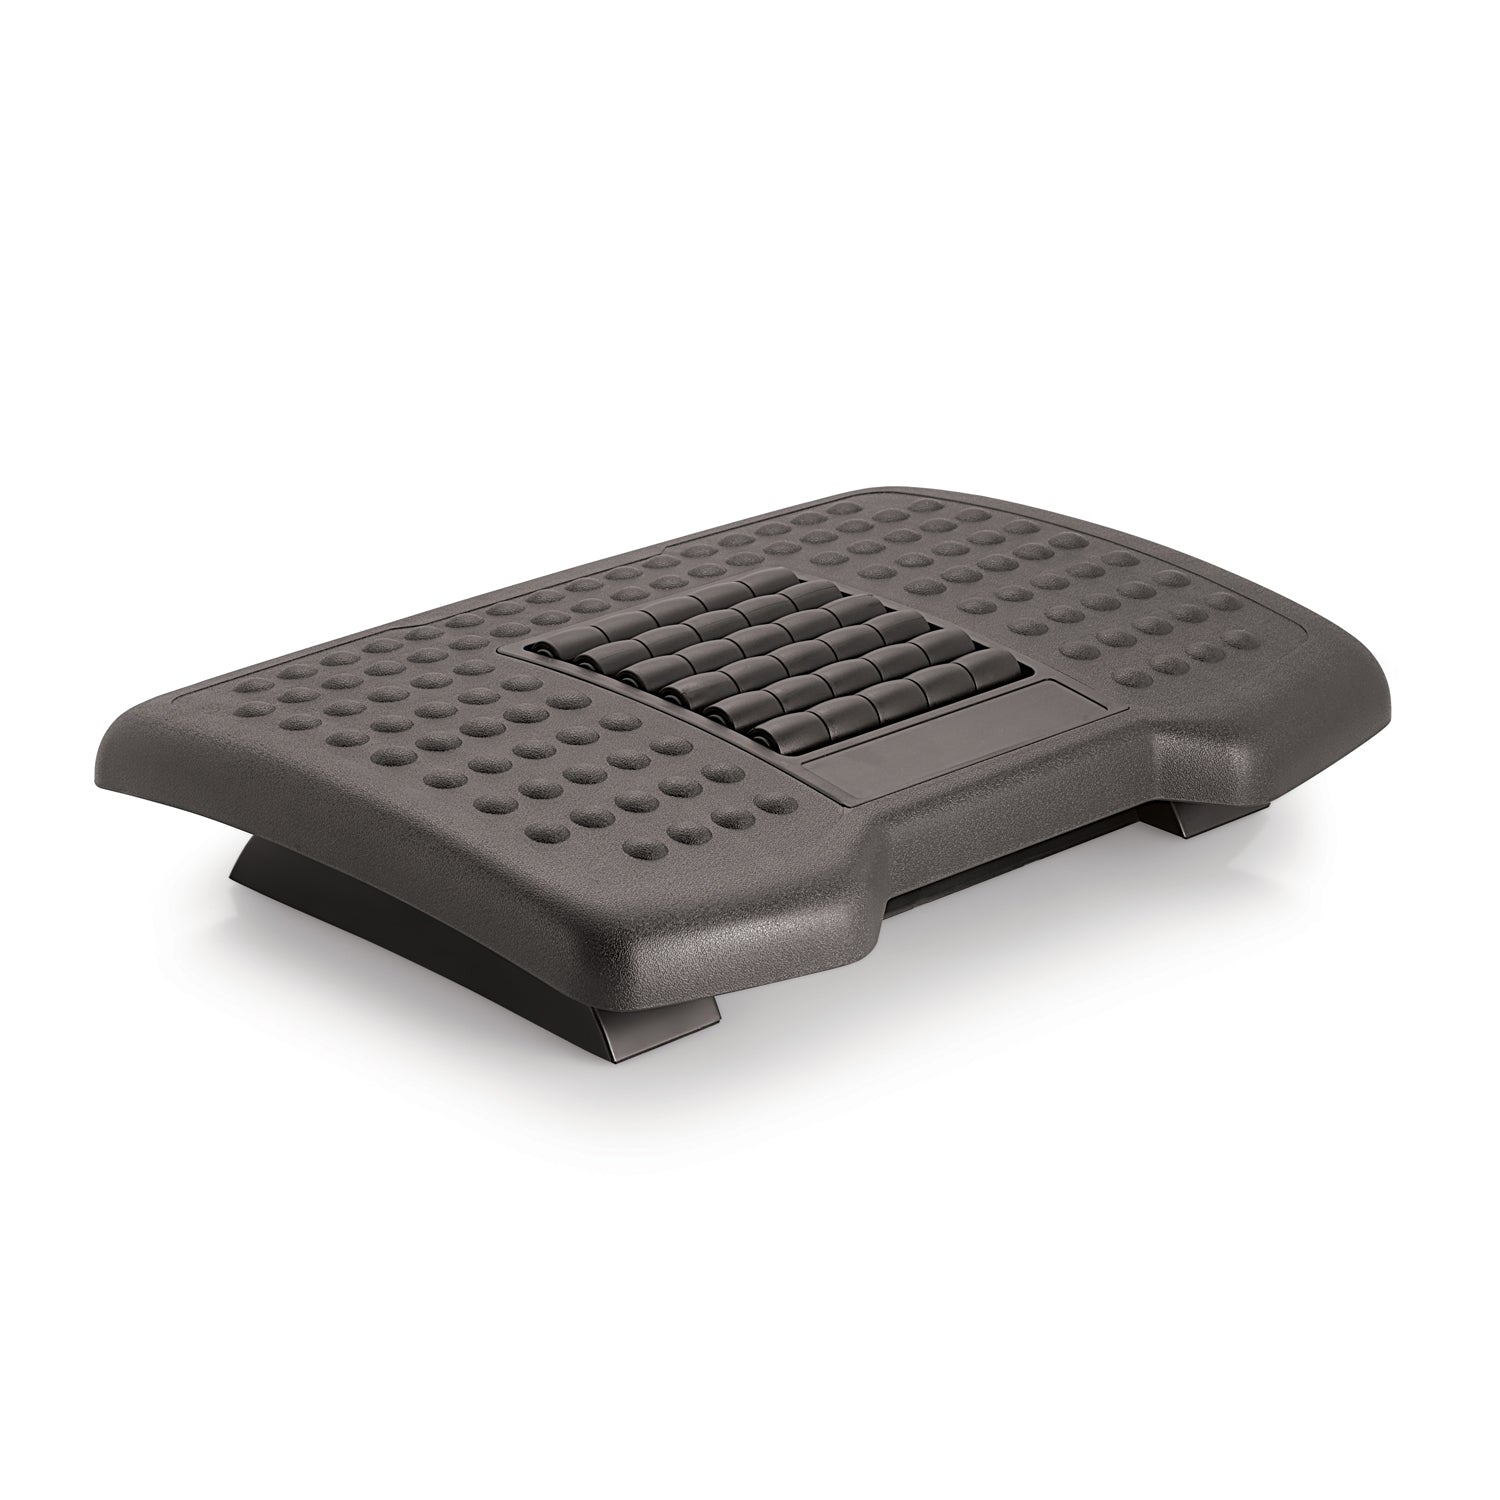 PALO07 Ergonomic Adjustable Footrest - With Roller